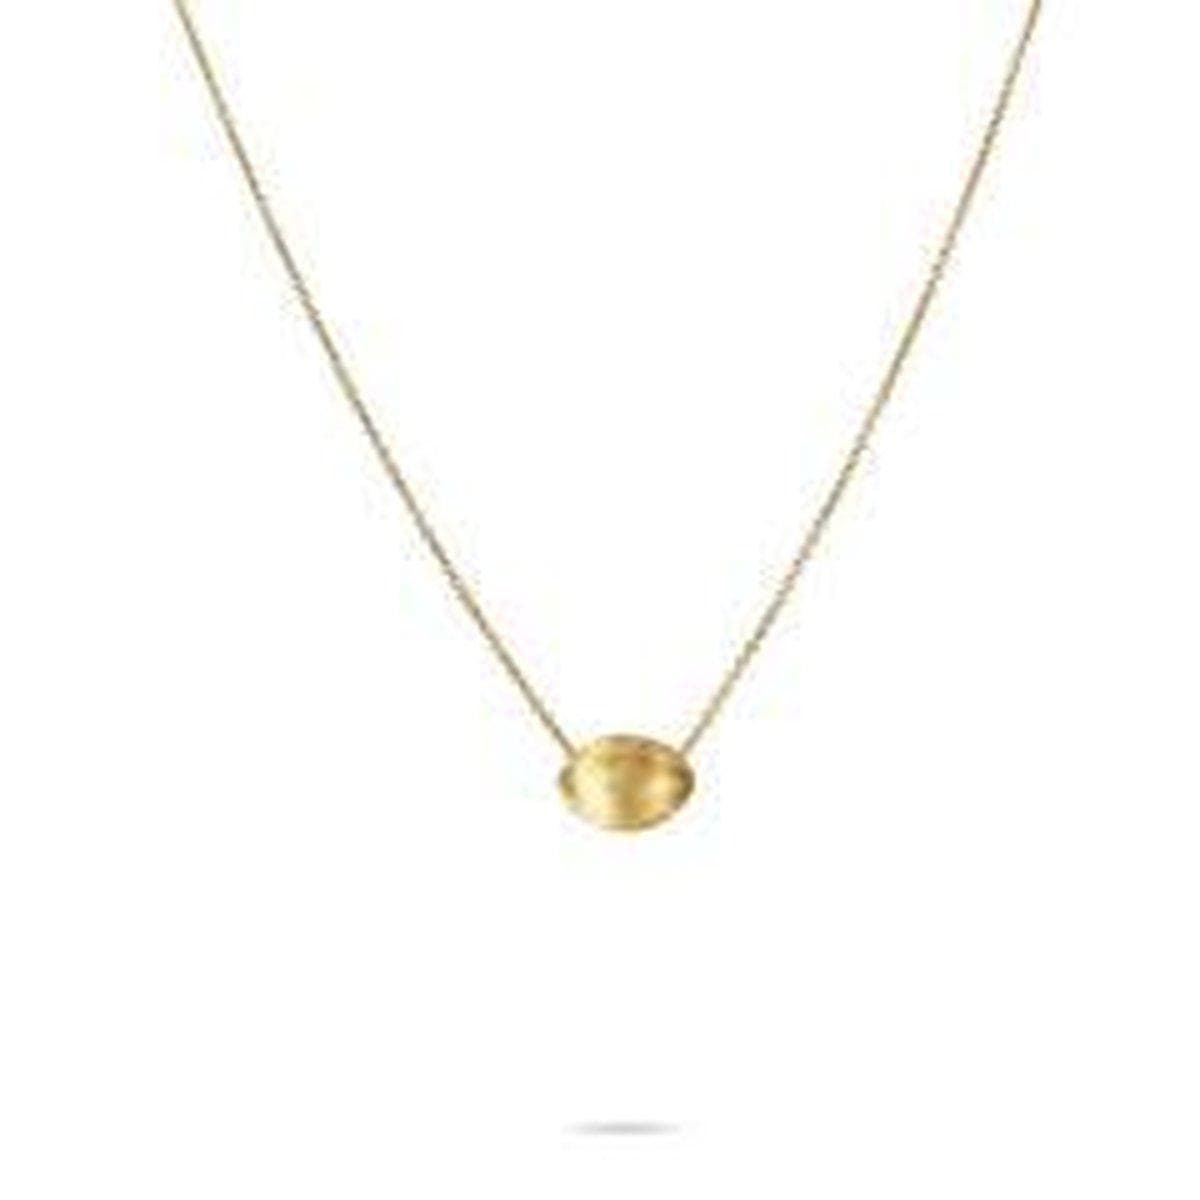 18K Delicati Necklace - CB1793 Y 16.5""